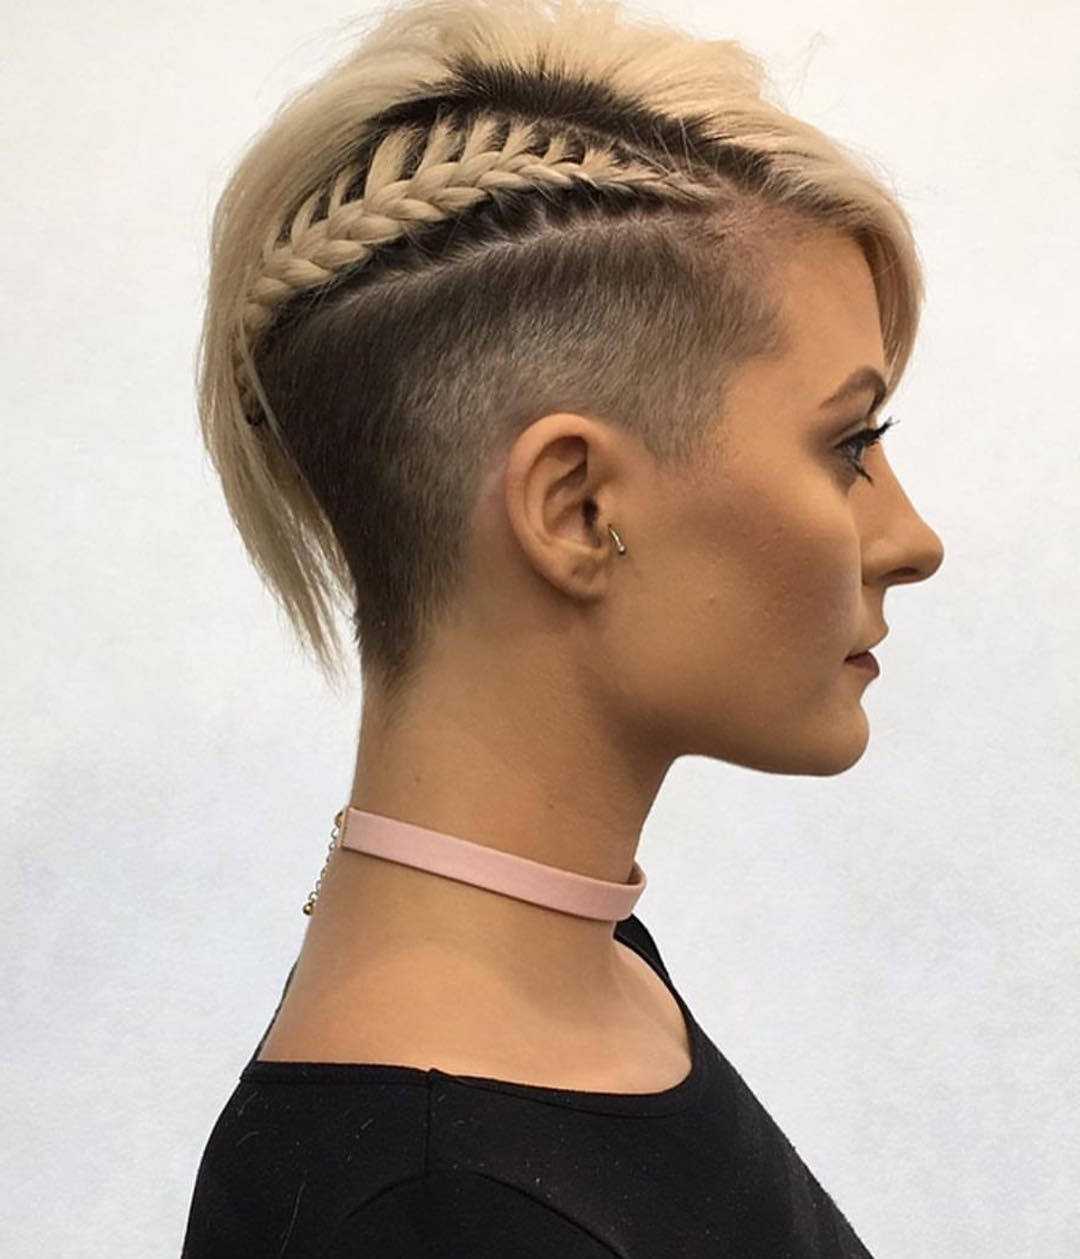 10 Chic Shaved Haircuts For Short Hair – Women Short Hairstyles 2018 Intended For Short Hairstyles With Both Sides Shaved (View 21 of 25)